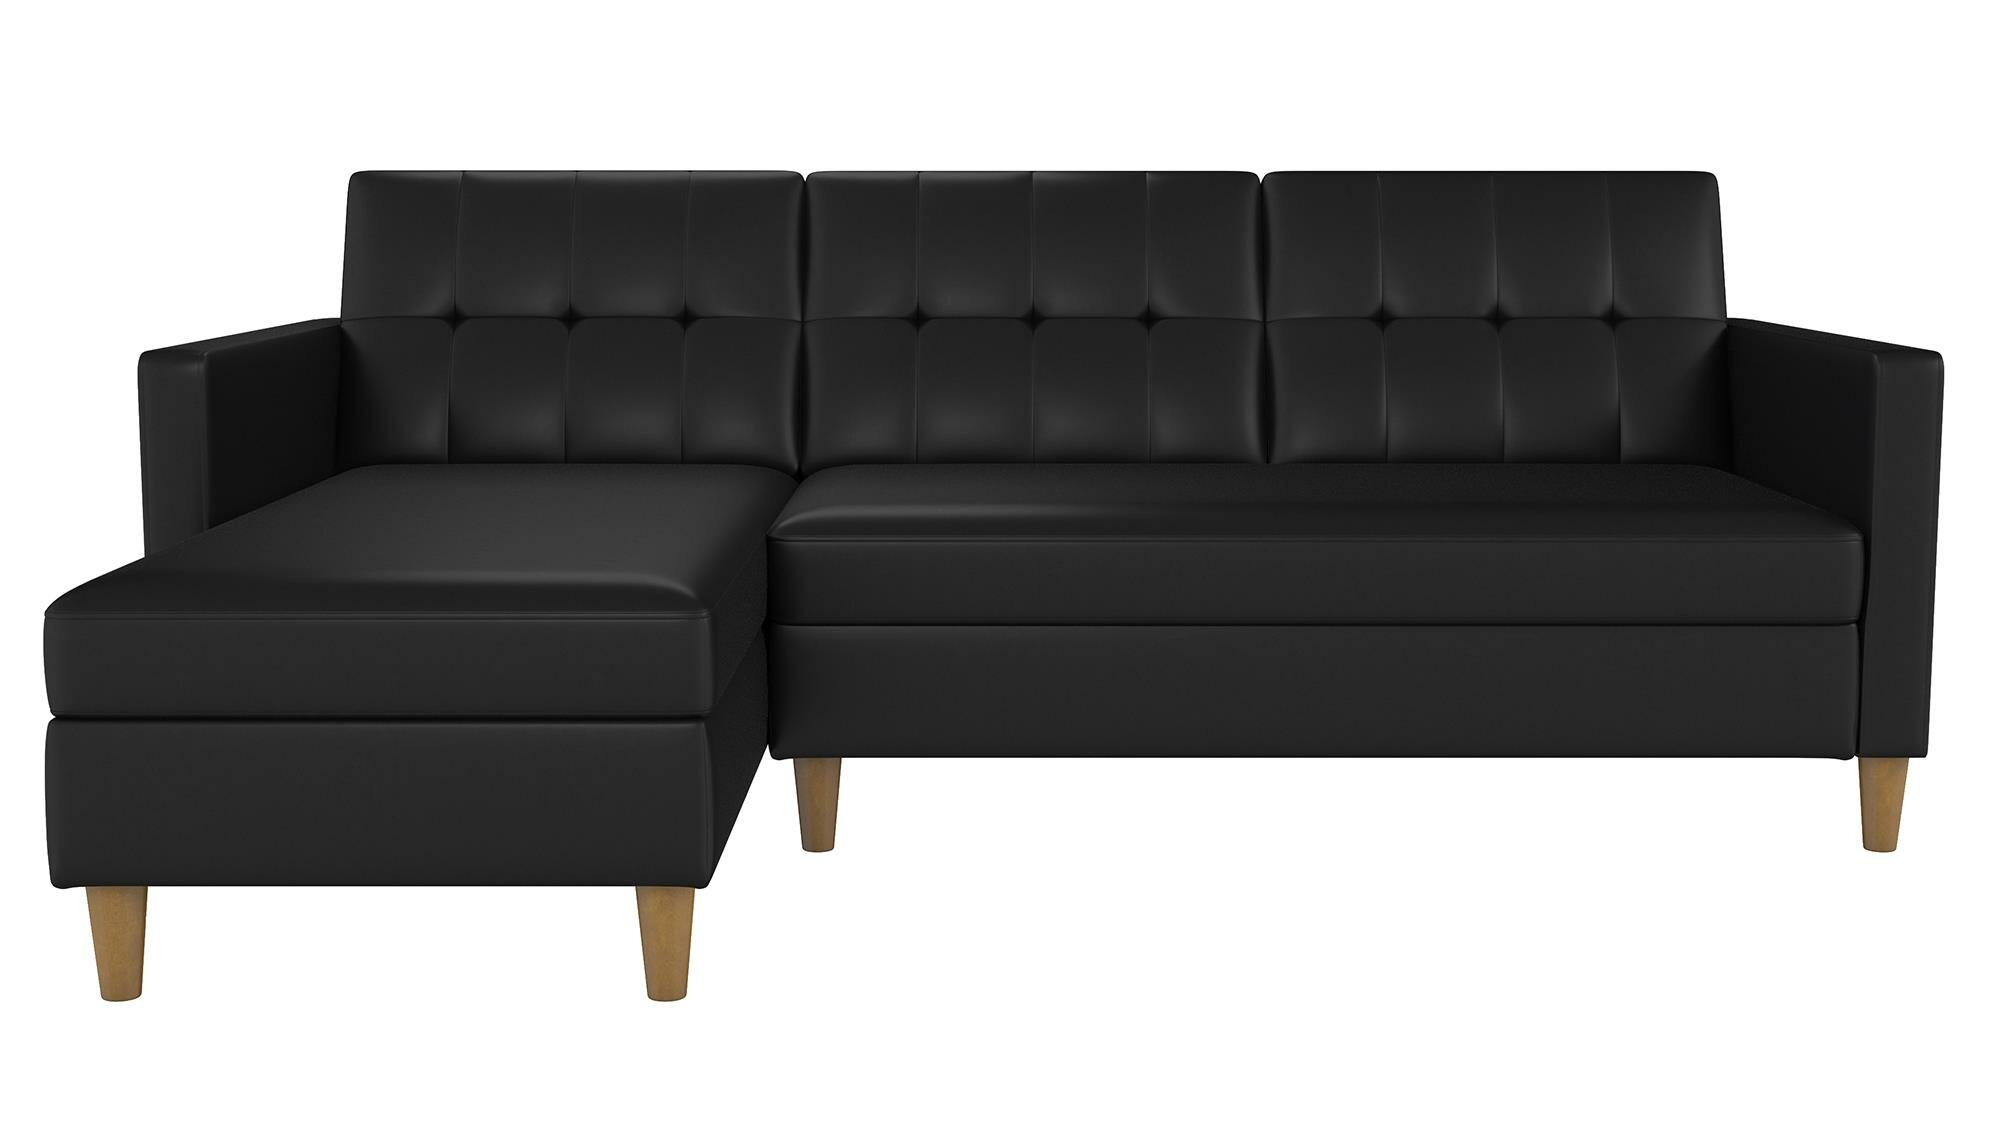 Picture of: Mid Century Upholstered Sectional Sofa Futon Couch With Reversible Chaise With Adjustable Back Sofa Bed Black Futon Sets